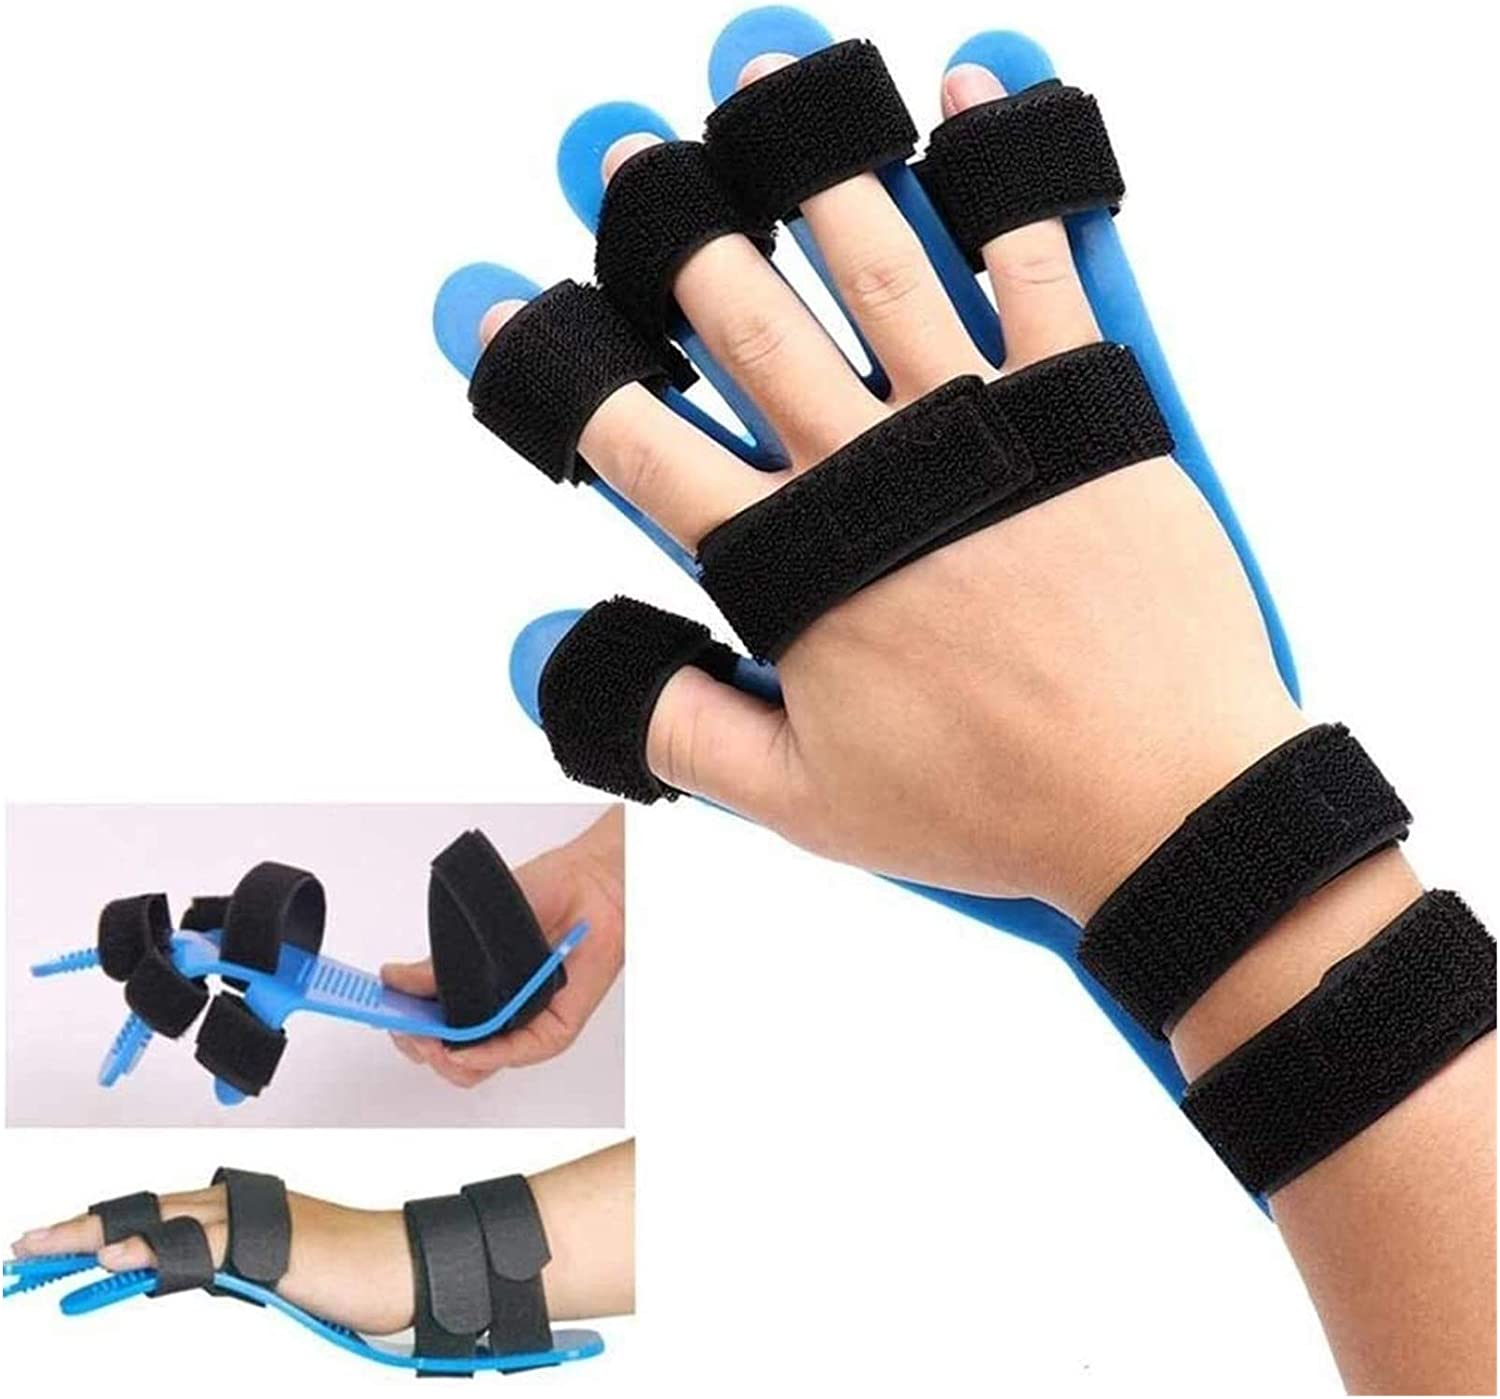 FGUD Portable Finger Splint Orthotics Right and Austin Mall Left Challenge the lowest price Han